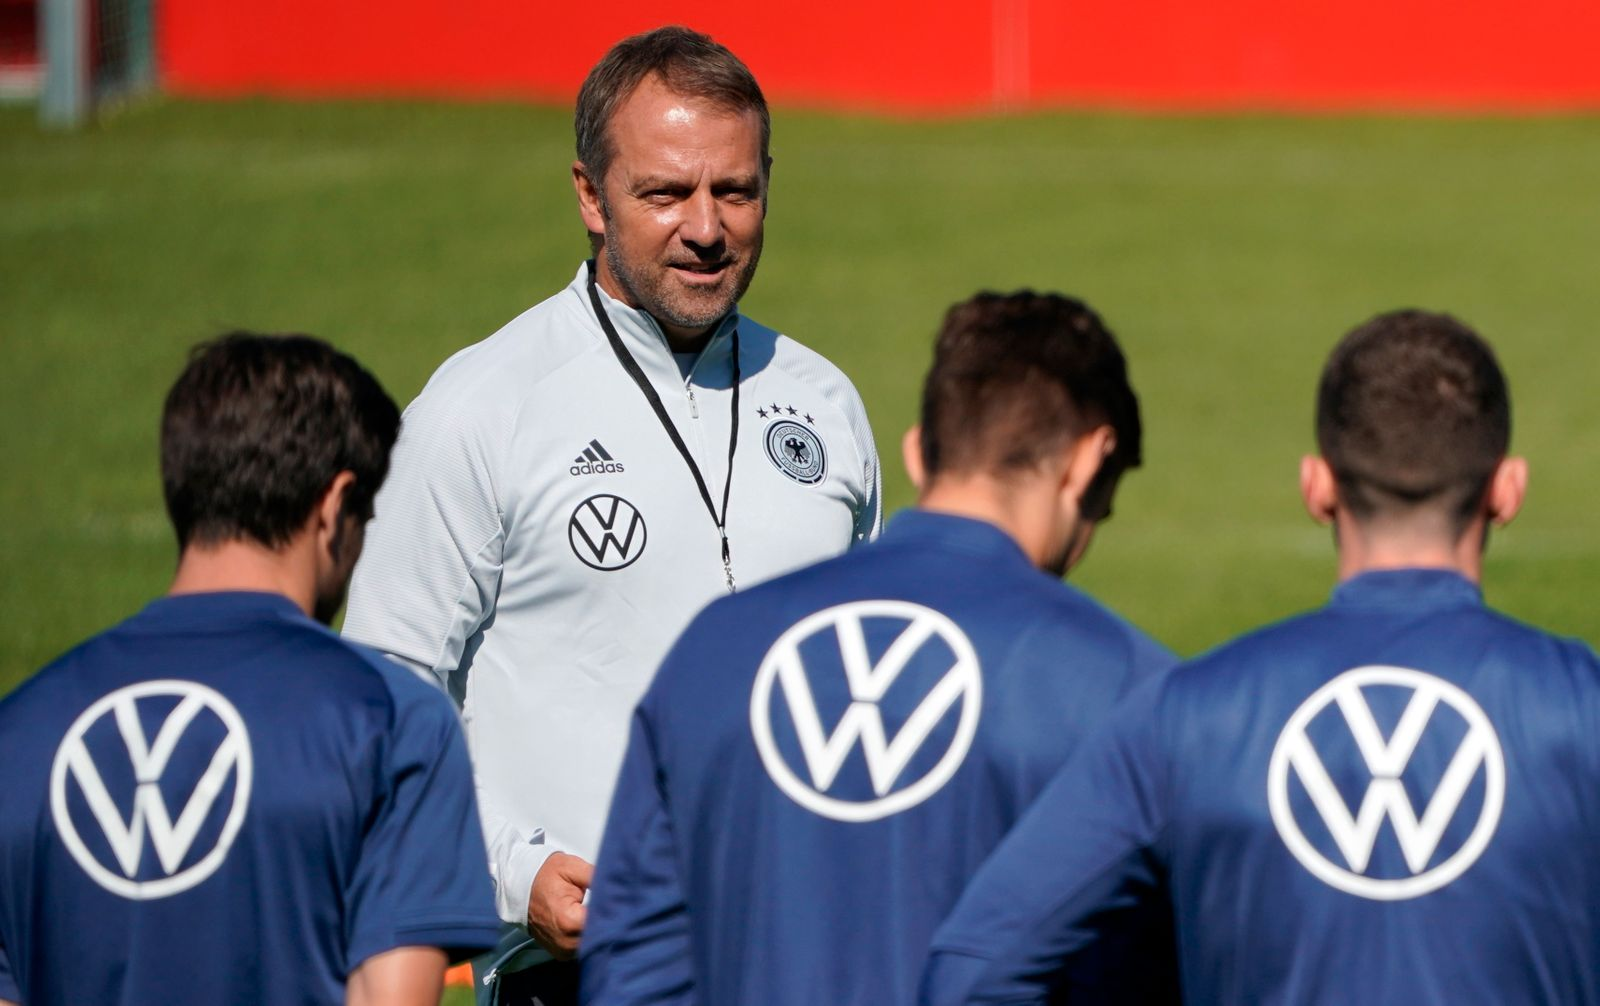 Germany national soccer team training session